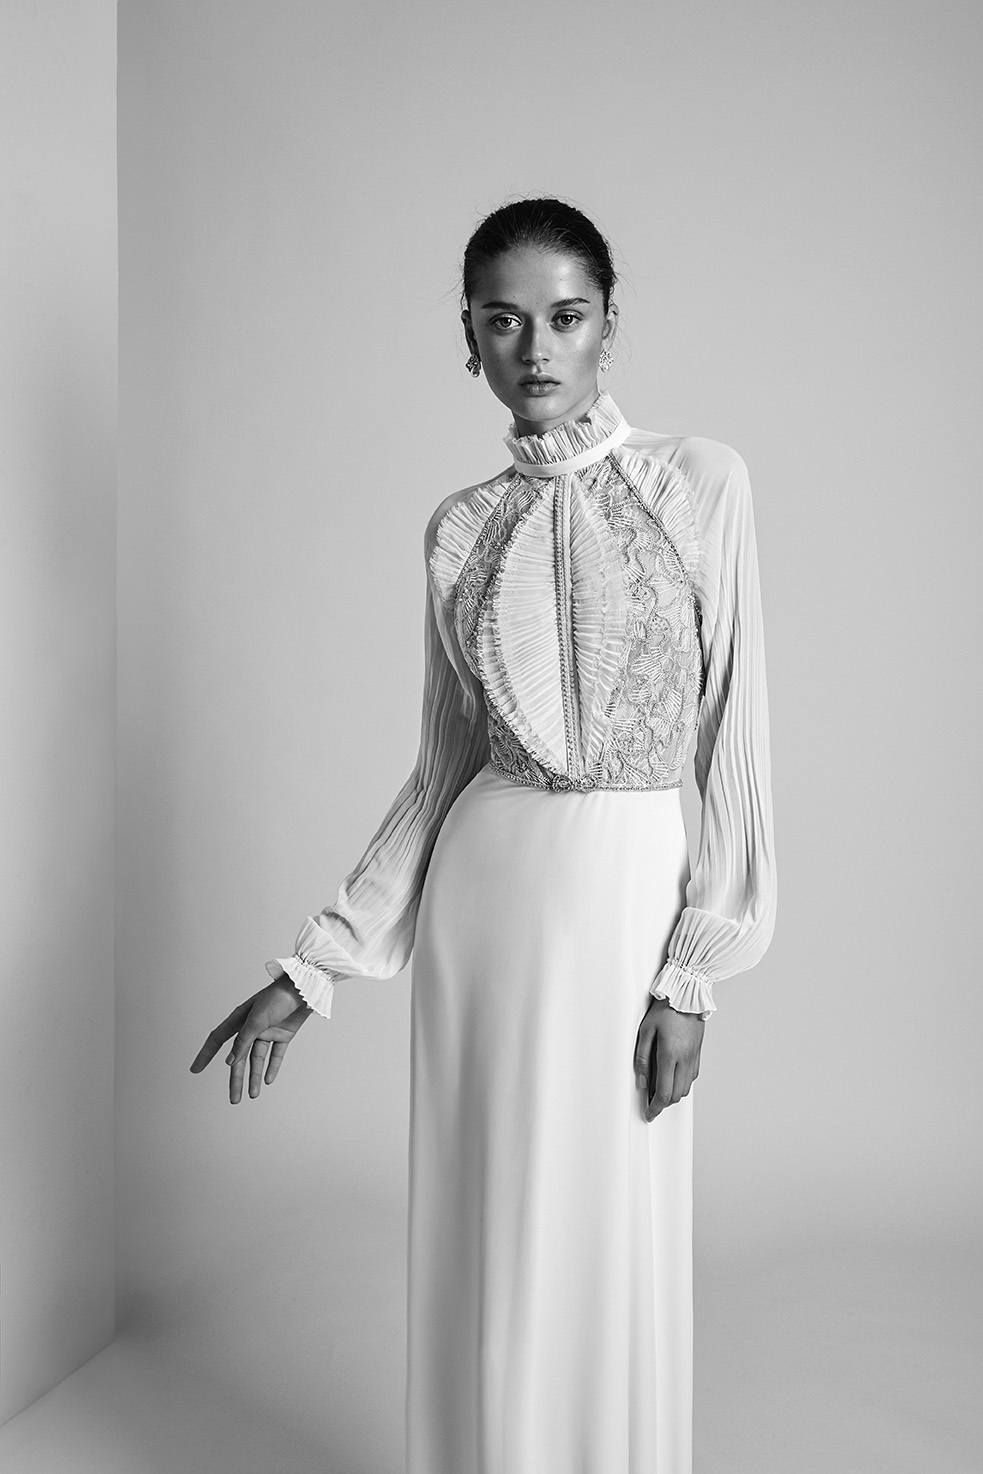 d793c3adcb3 These designer wedding gowns are perfect for the haute couture bride. The  structure